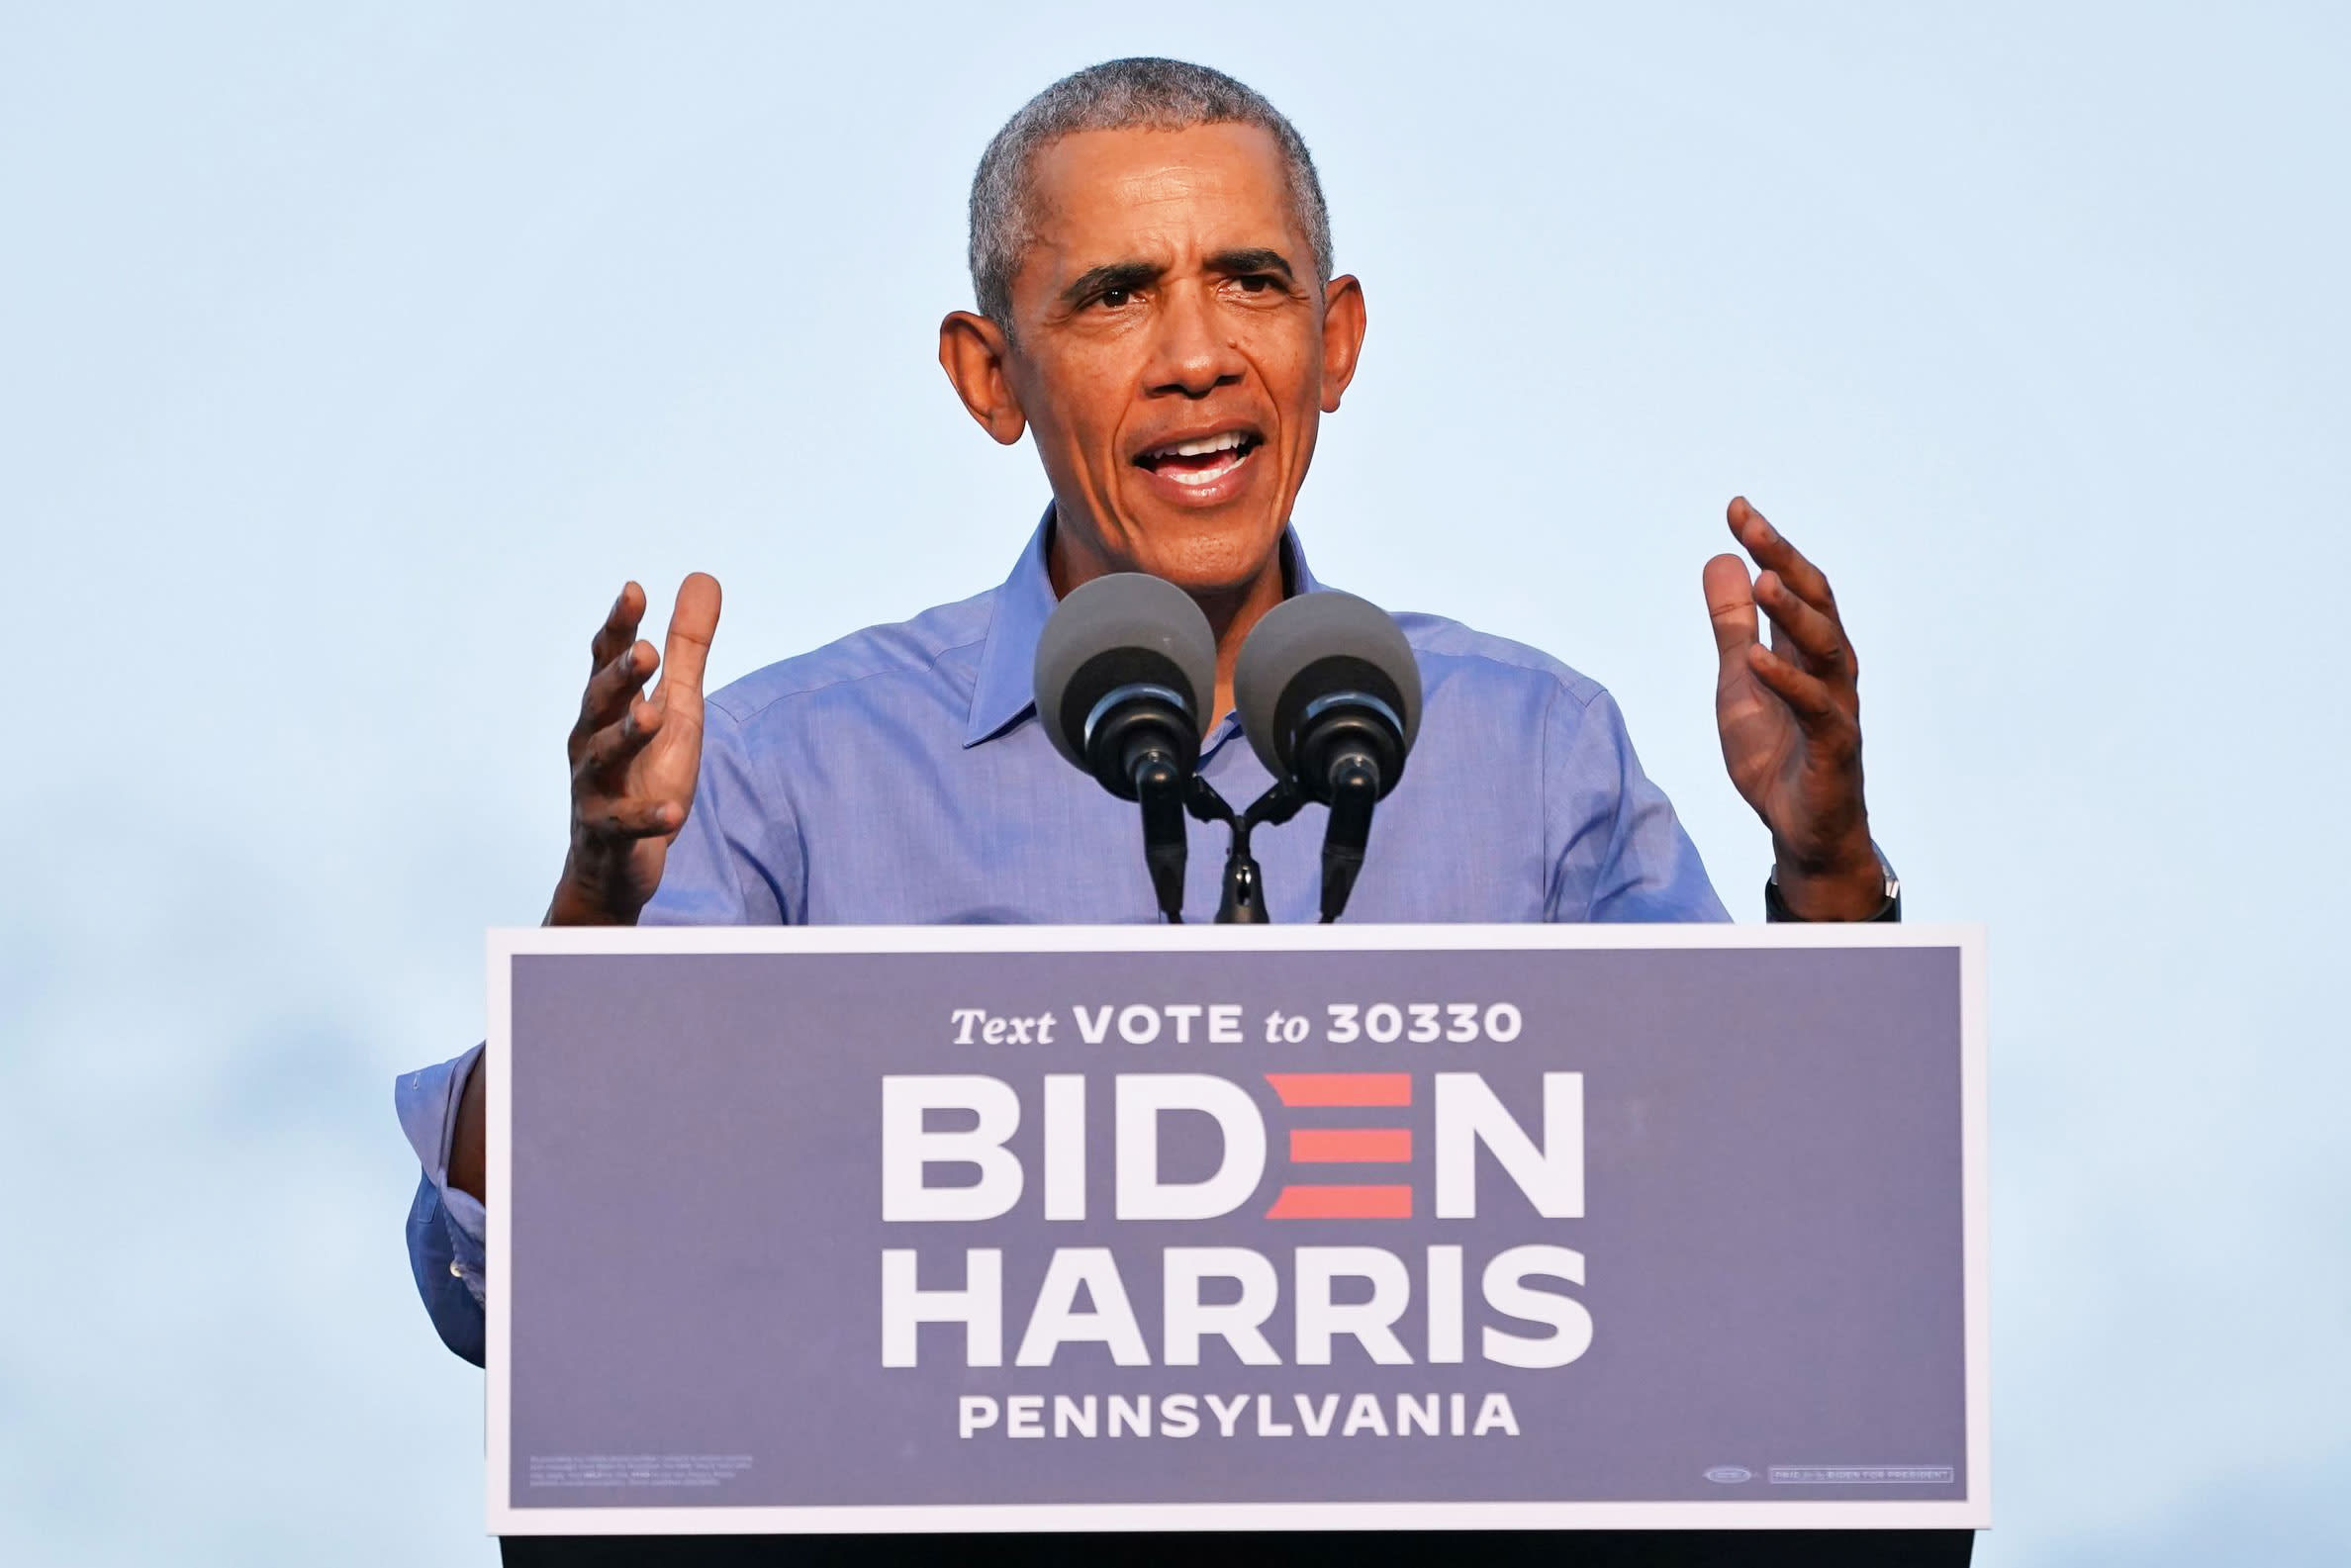 Obama hammers Trump in his first rally for Joe Biden: 'We have to vote like never before'